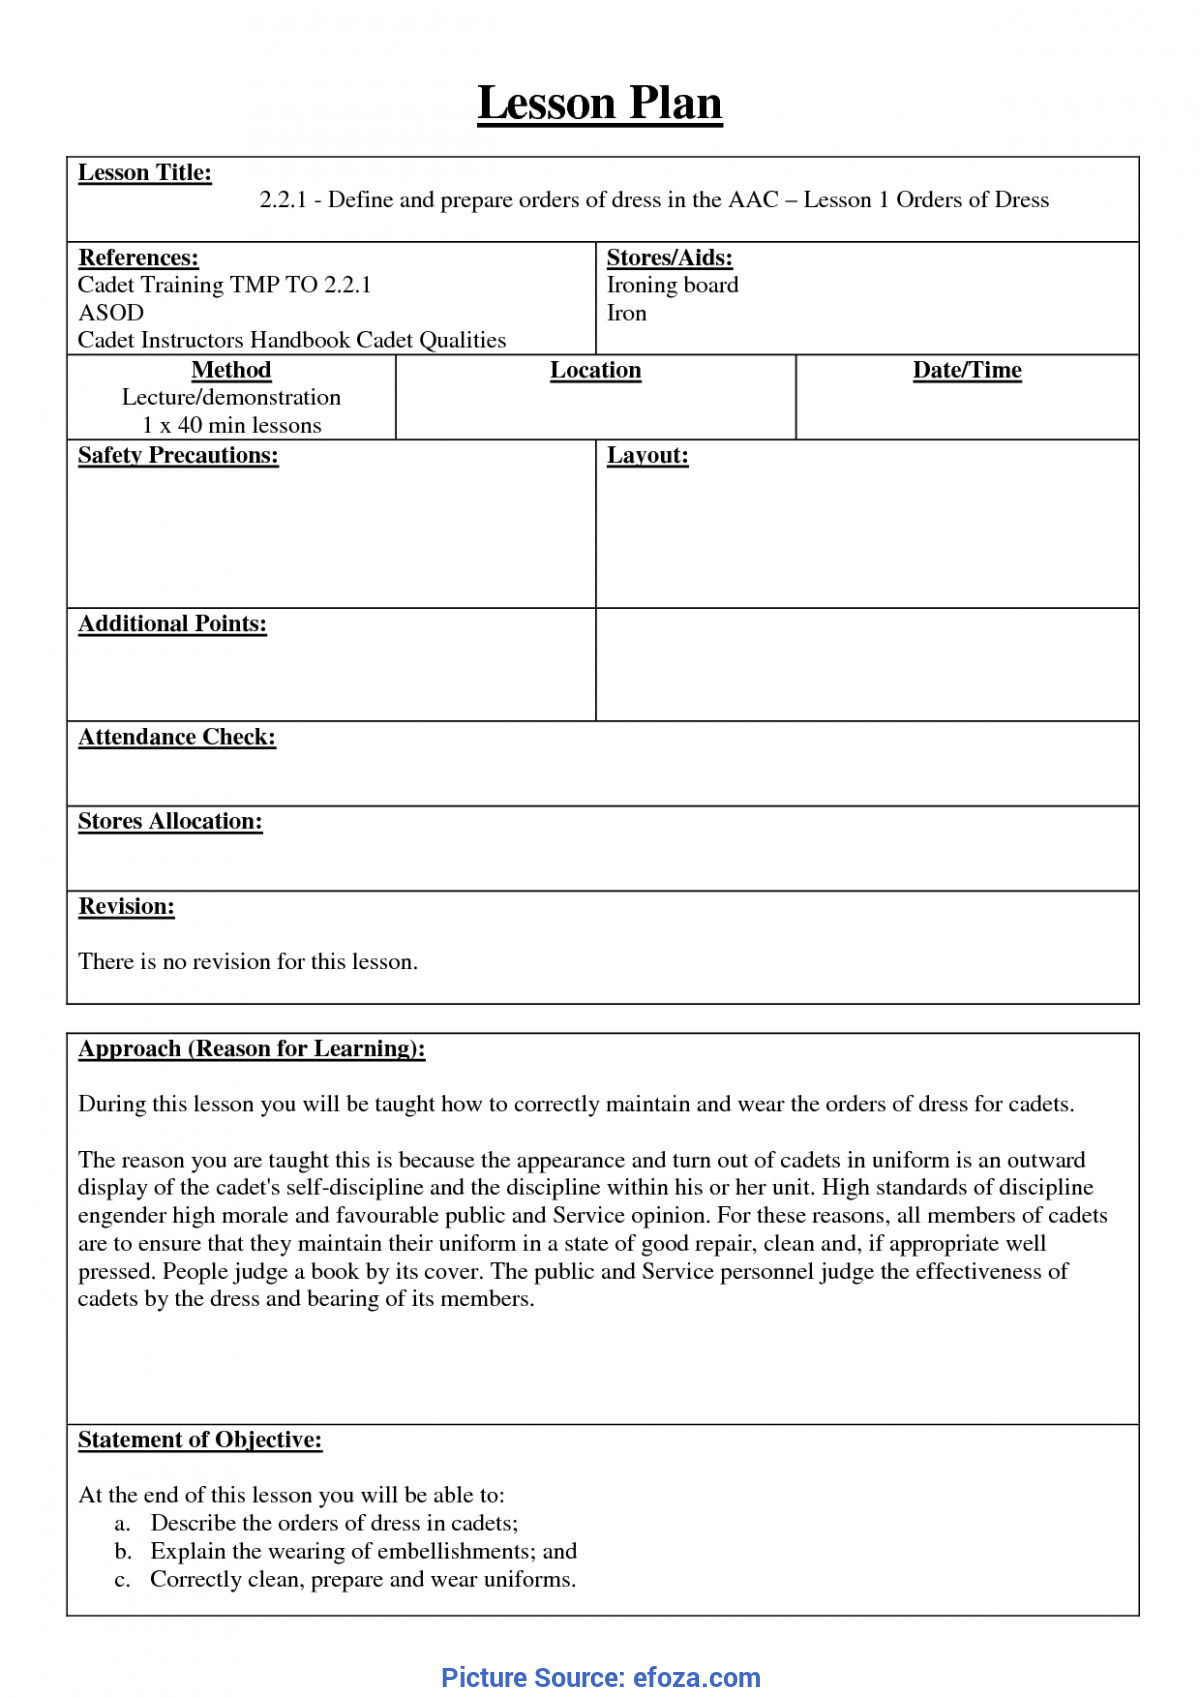 Top How To Make A Lesson Plan For Cadets 7 Best Images Of Training Lesson Plan Template - Sample Lesso